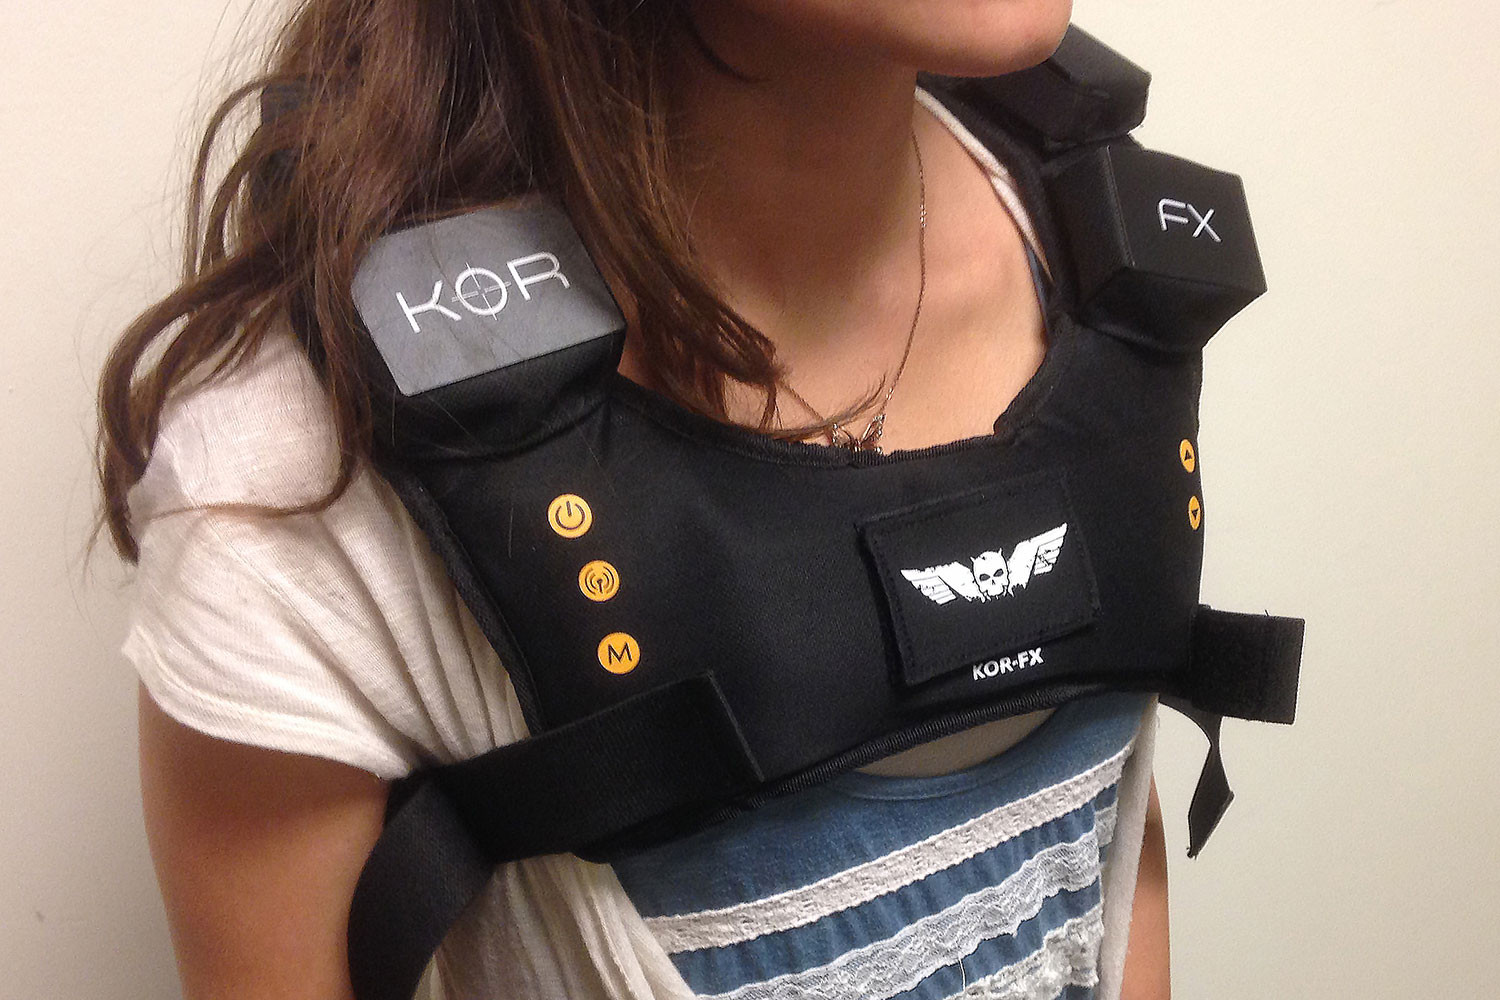 Kor-FX Haptic Vest: Our first take